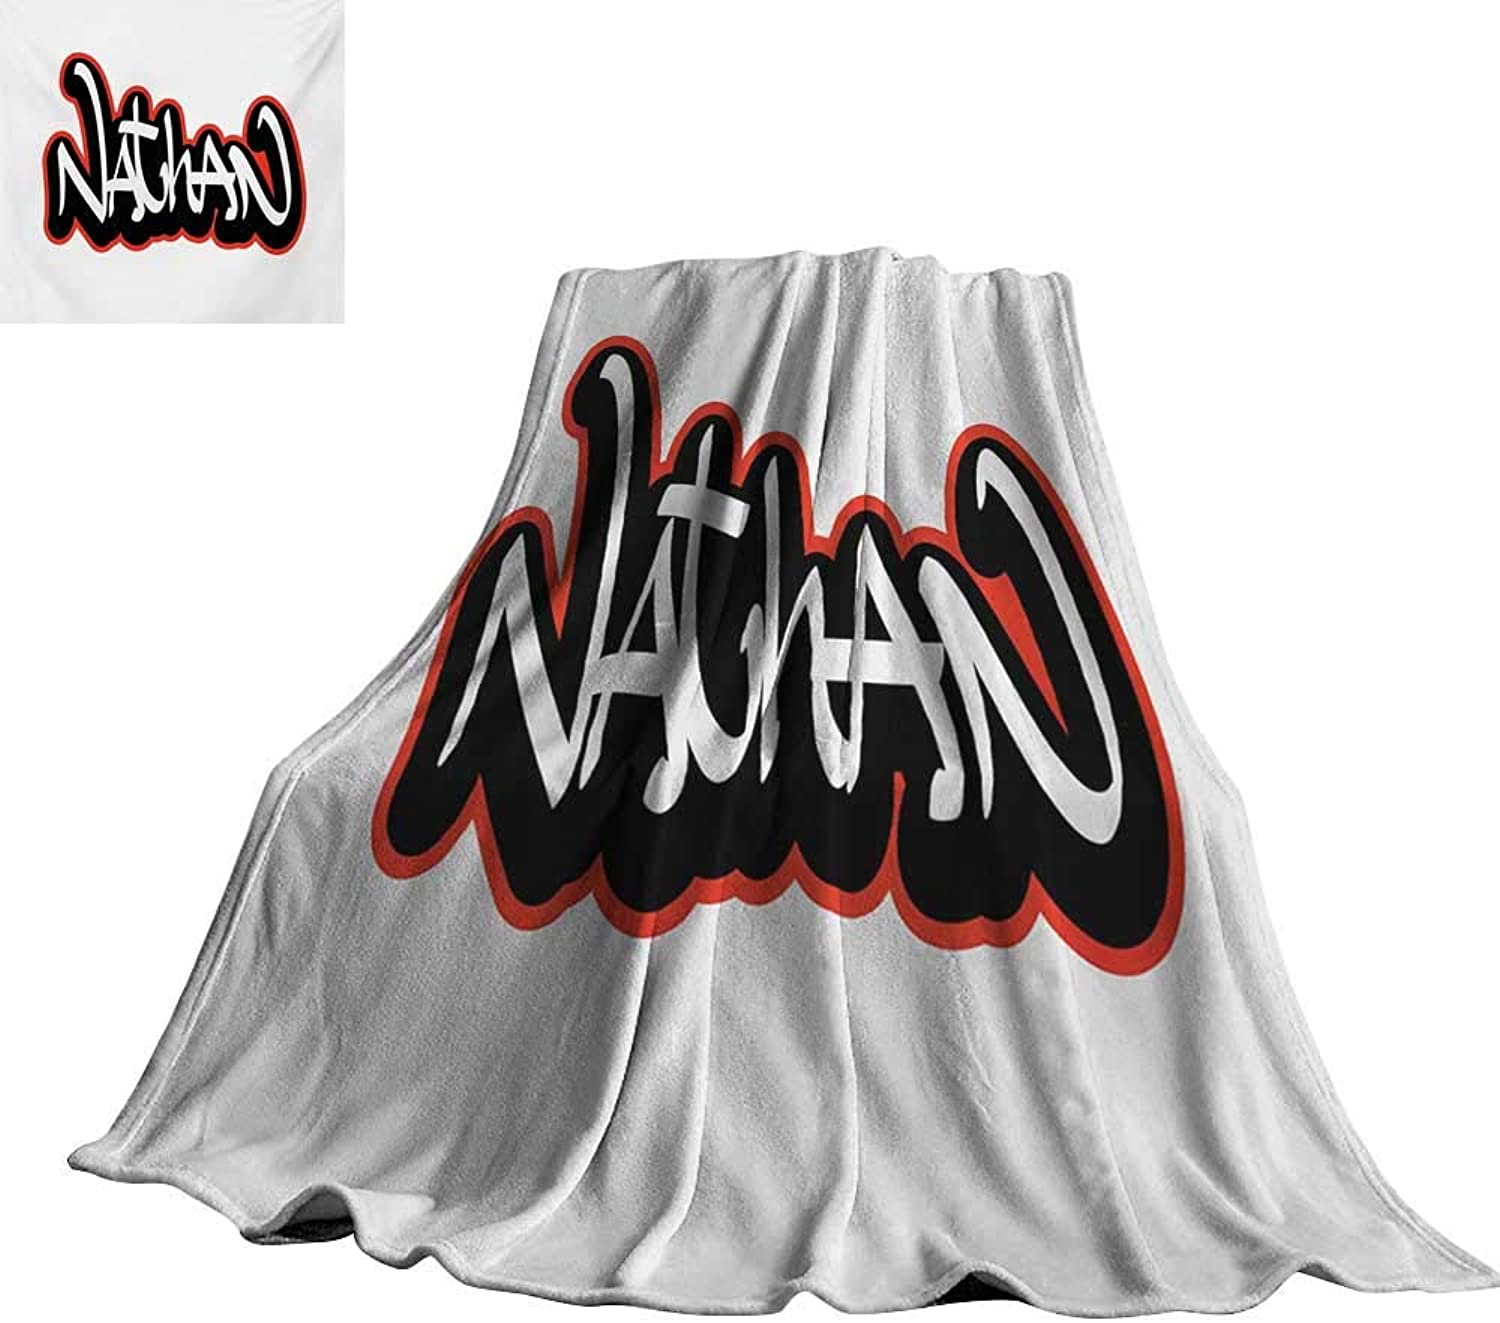 RenteriaDecor Nathan,Soft Lightweight Blanket Artistic Boys Name Graffito Wall Writing Design for Men Doodle Style Lightweight Plush Throws 60 x50